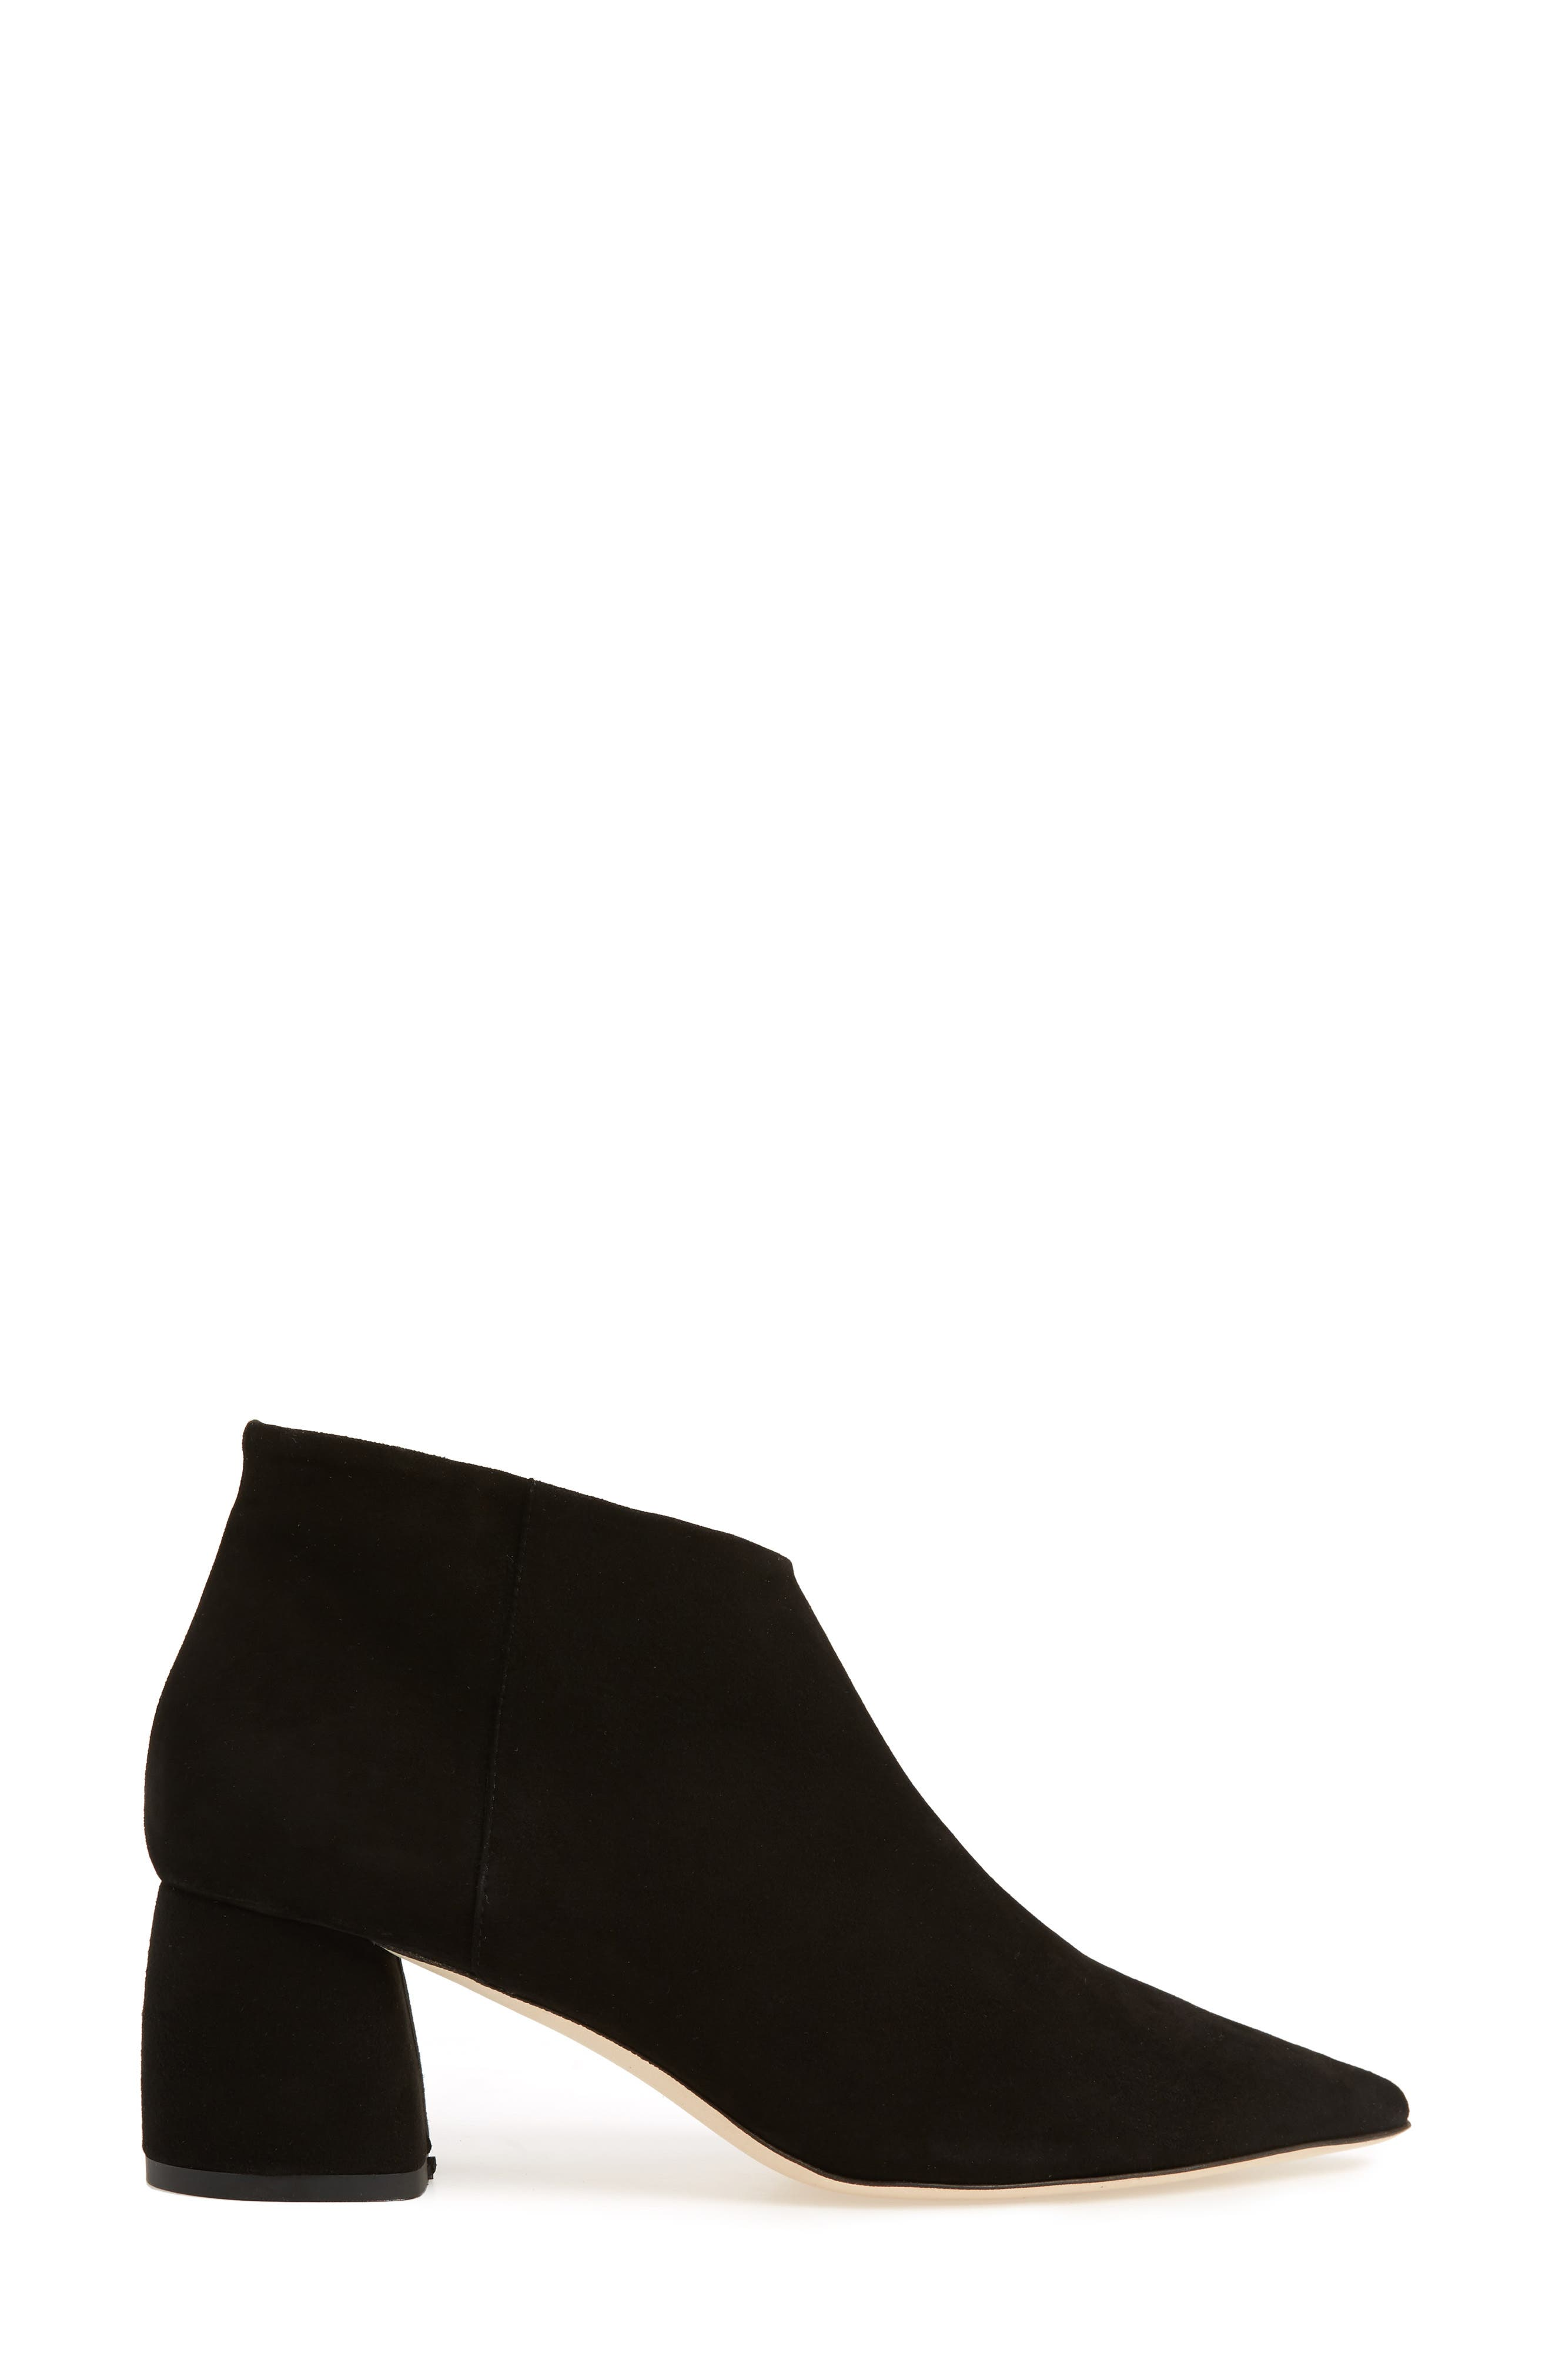 Butter Whistle Pointy Toe Bootie,                             Alternate thumbnail 3, color,                             001